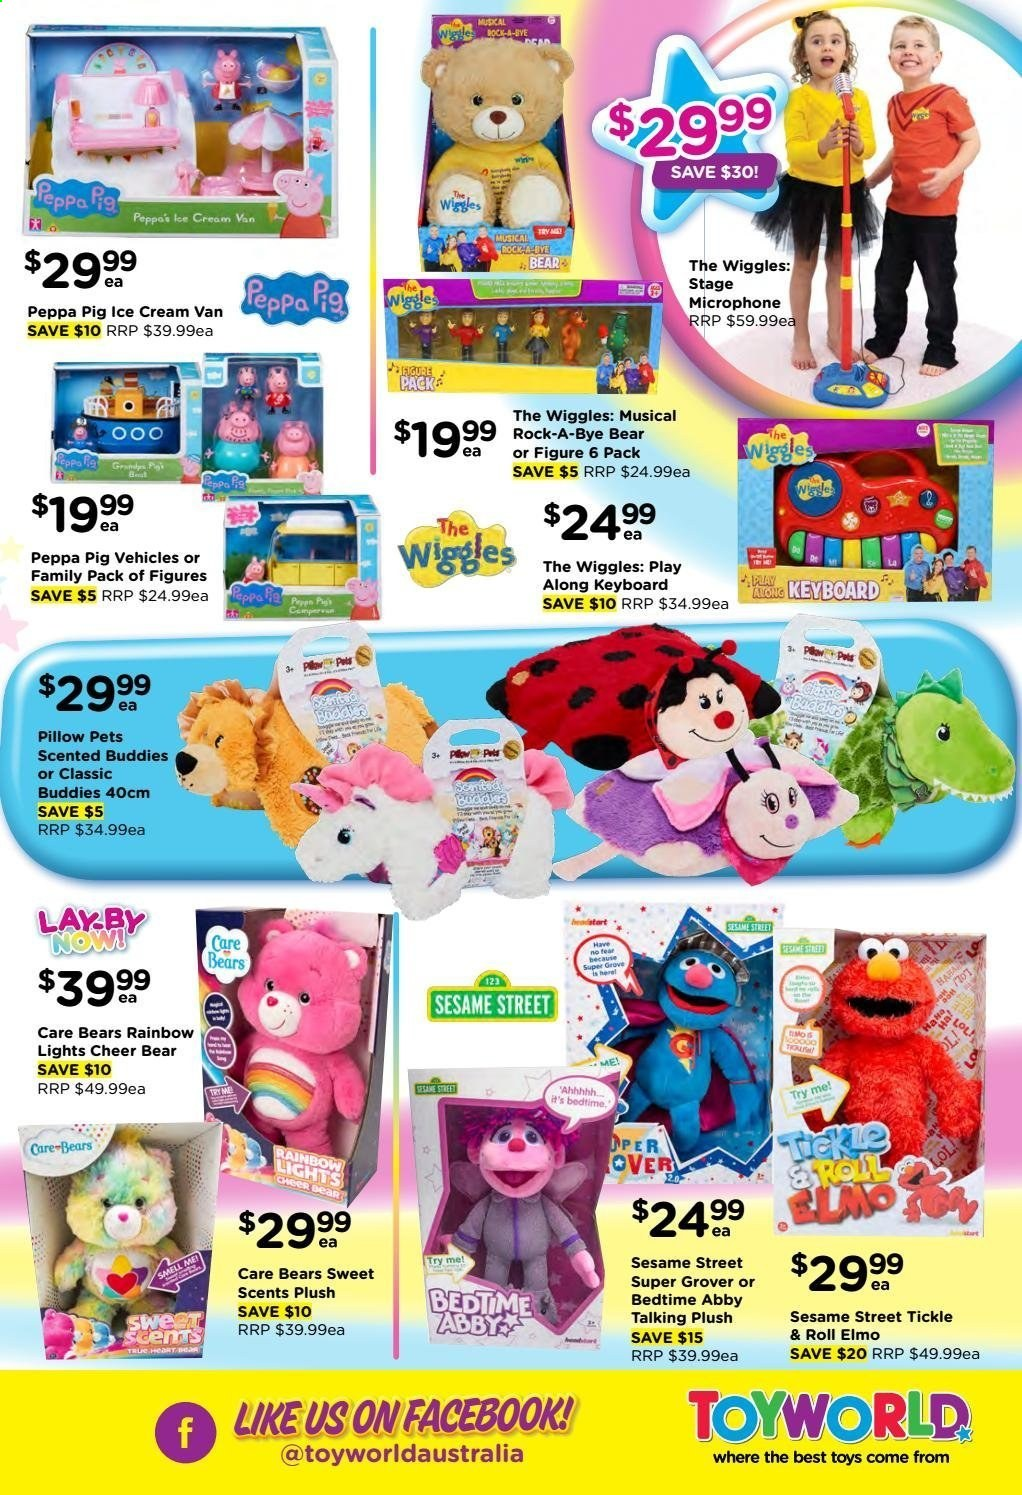 Toyworld catalogue and weekly specials 10 6 2019 - 30 6 2019 | Au